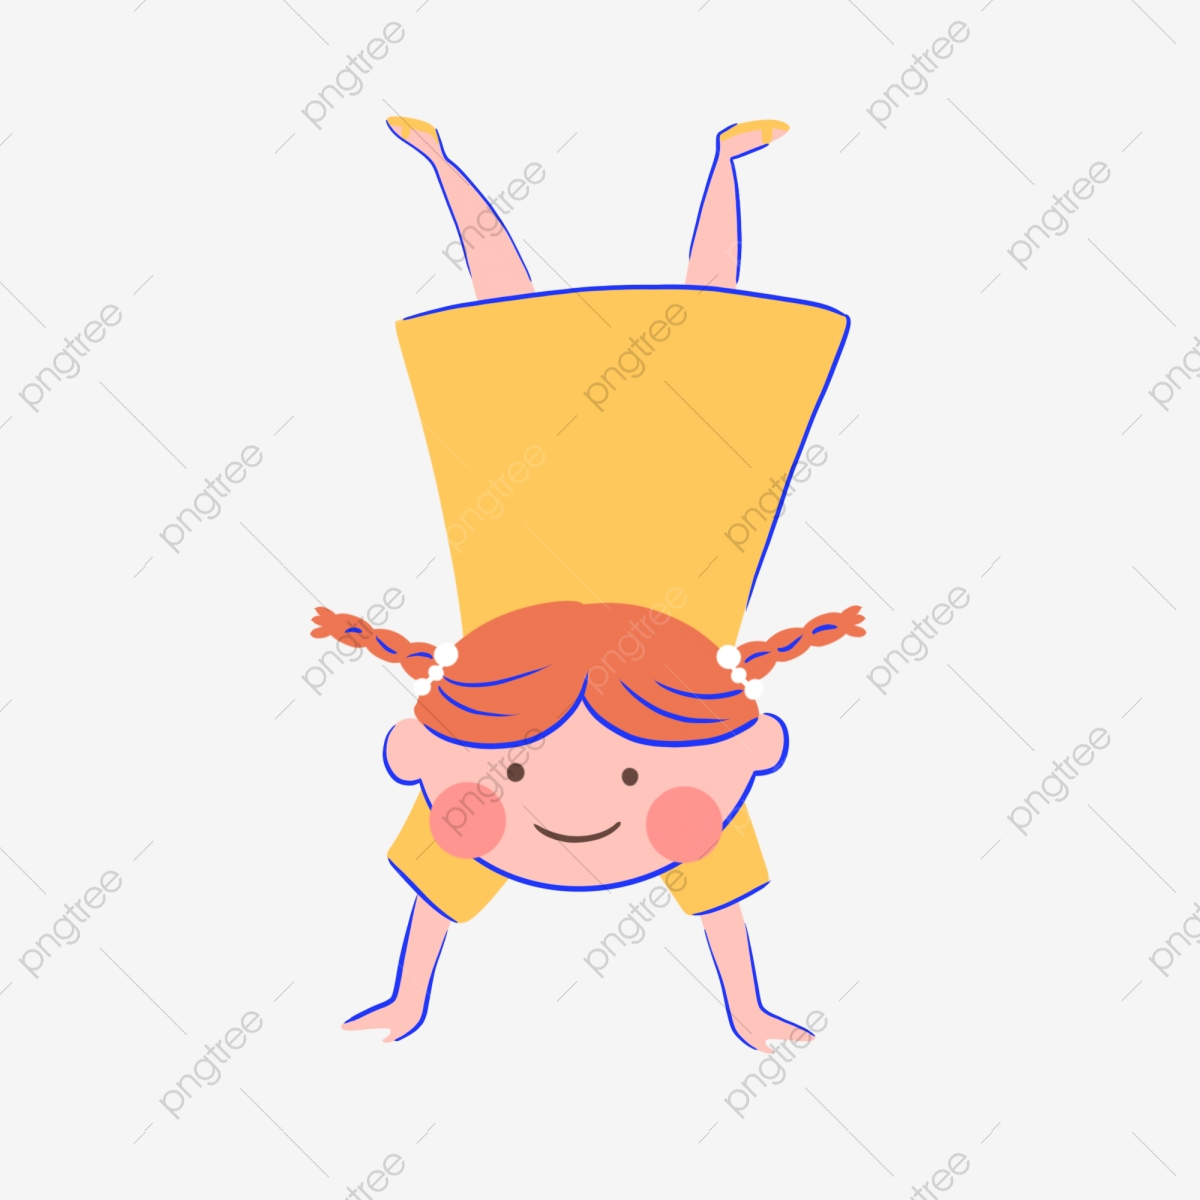 Hand Drawn Cute Girl Upside Down Cartoon Children Kids Png Transparent Clipart Image And Psd File For Free Download